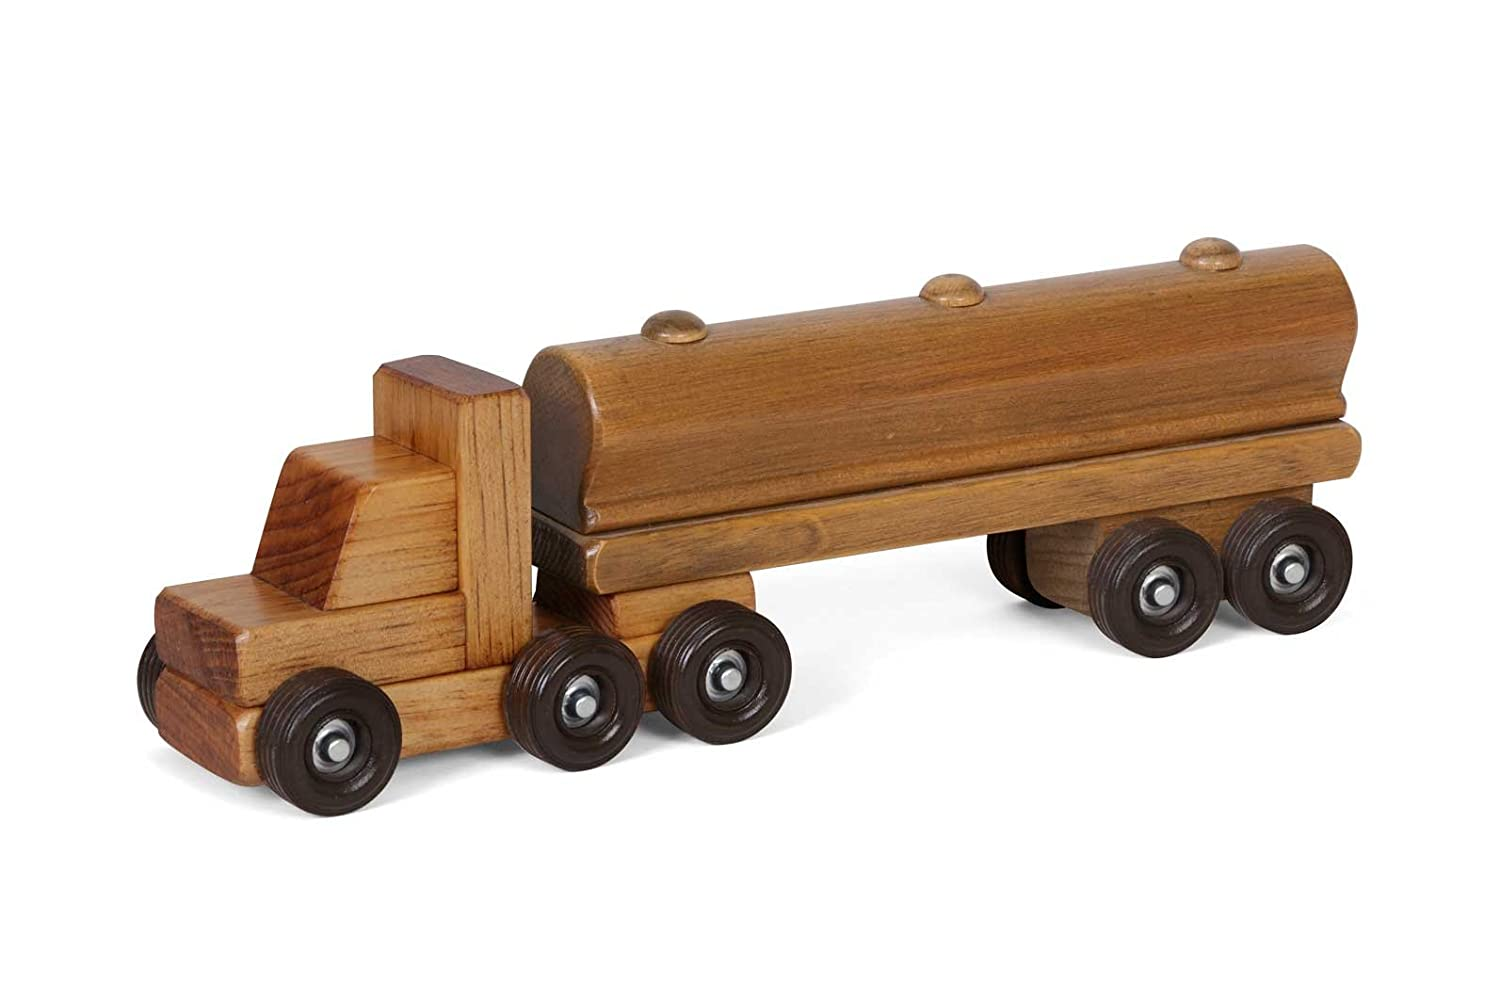 Amish-Made Wooden Semi Tanker Truck Toy Lapps Toys